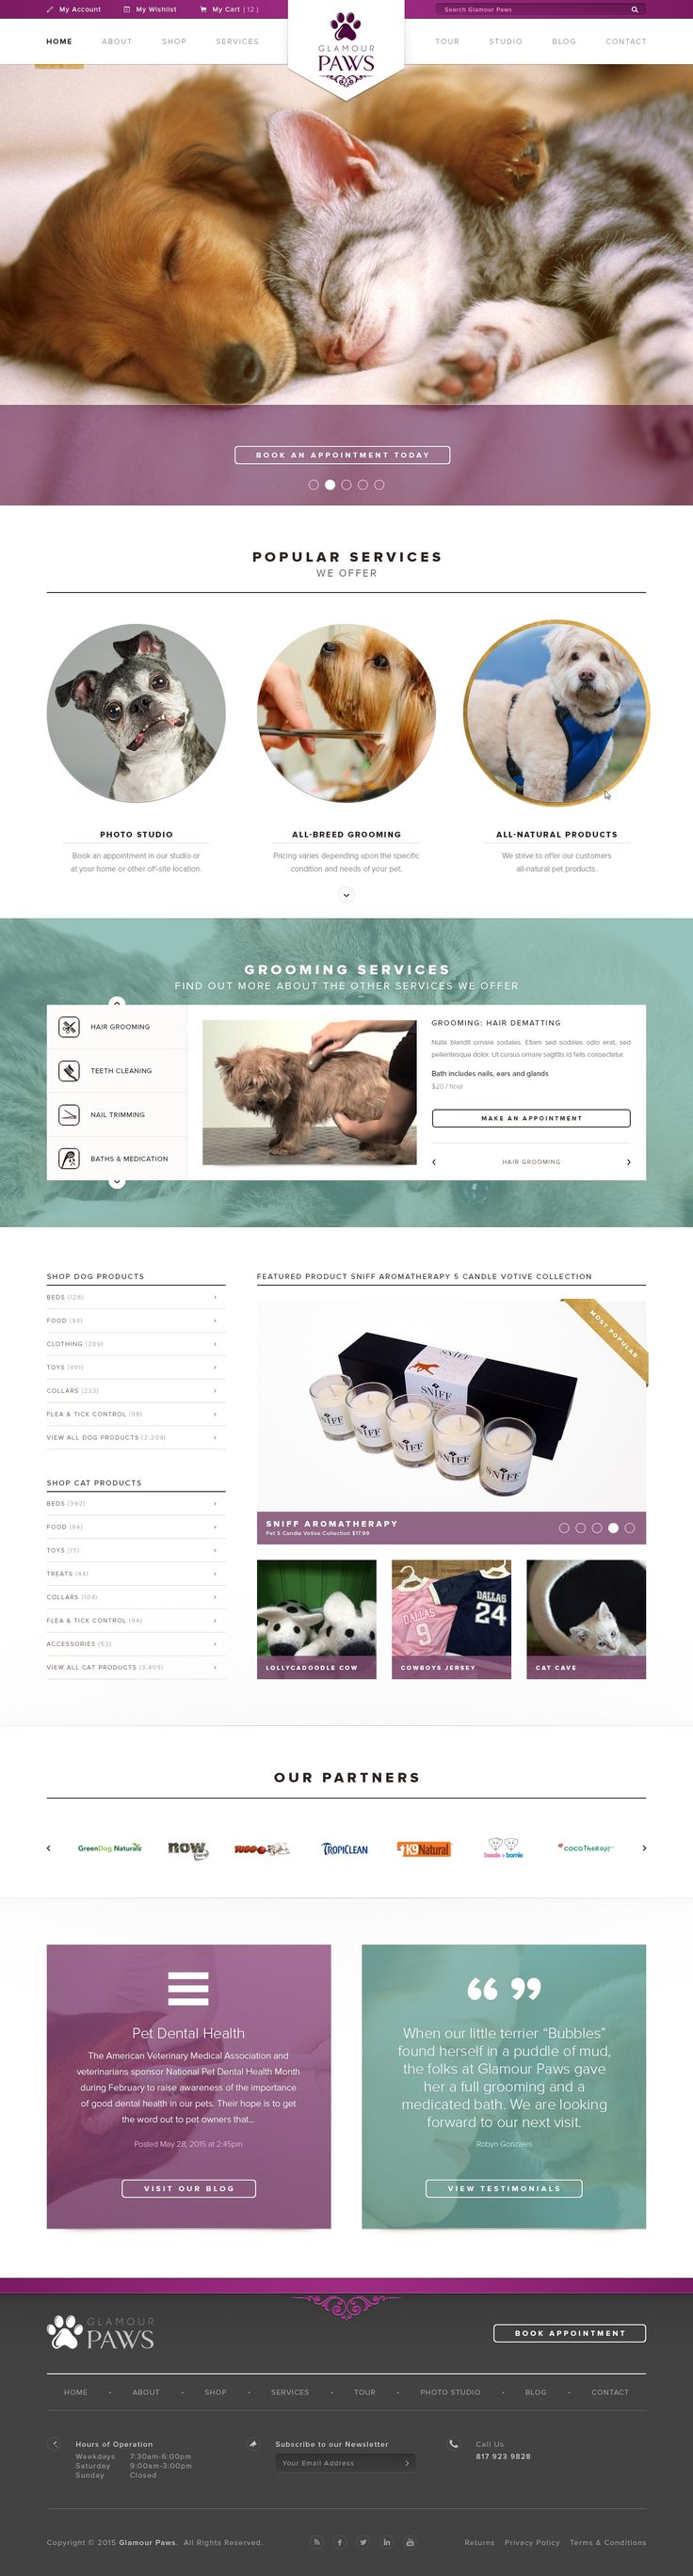 Design #64 by Money Creative | Pet Boutique & grooming Website Template update